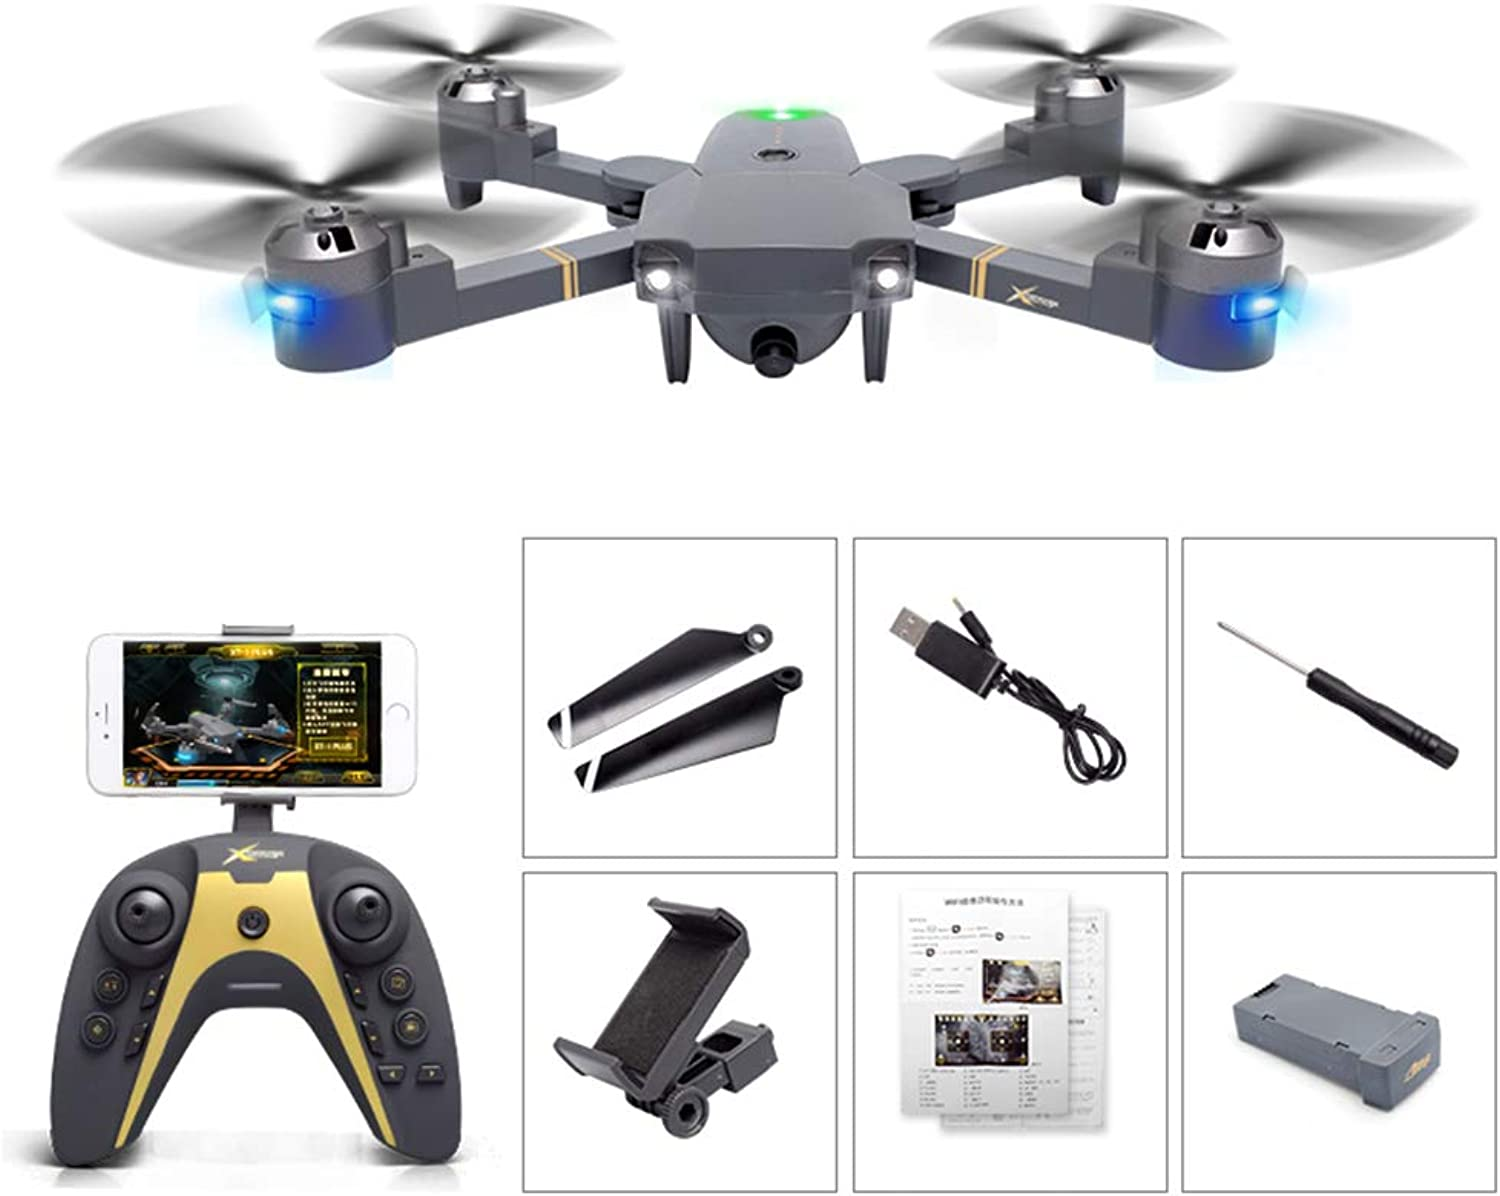 WANGKM FPV RC Quadcopter Drone, 720P Wide-Angle HD Camera 4 Channel 2.4GHz 6-Gyro withPneumatic Constant Height,Headless Mode, One Key Return Function,Foldable,Gesture Photo, for Beginner